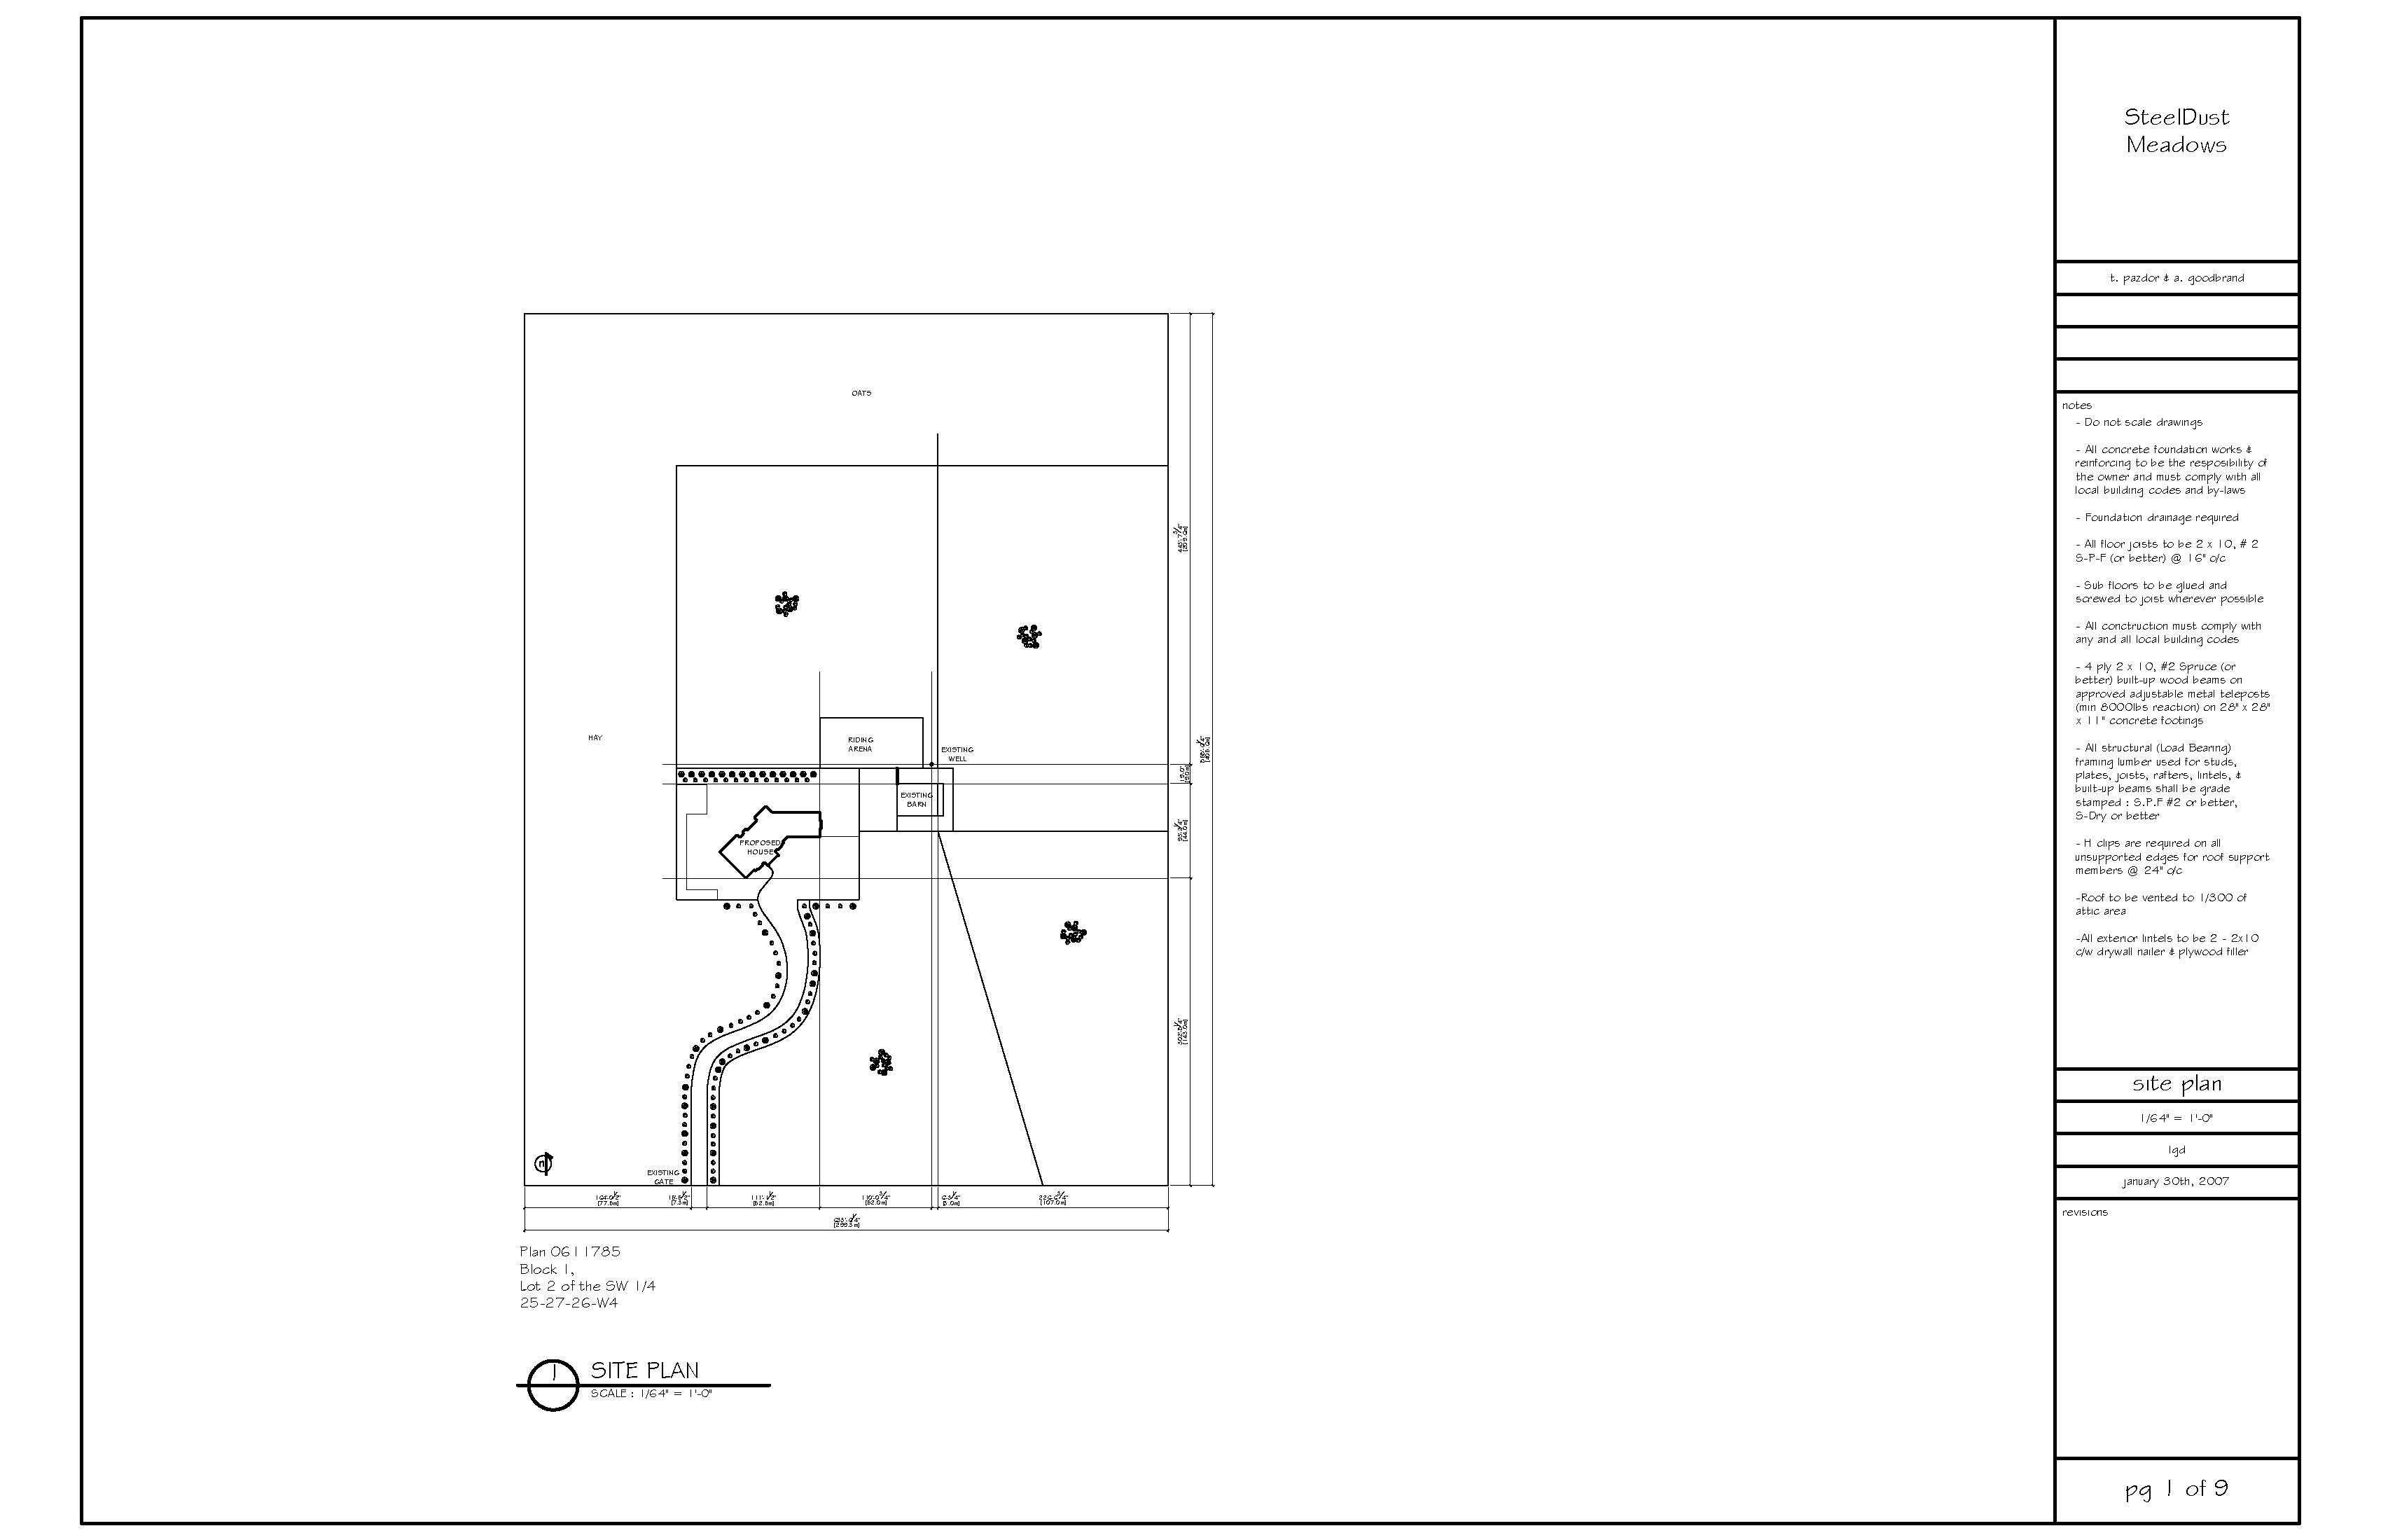 Our site plan